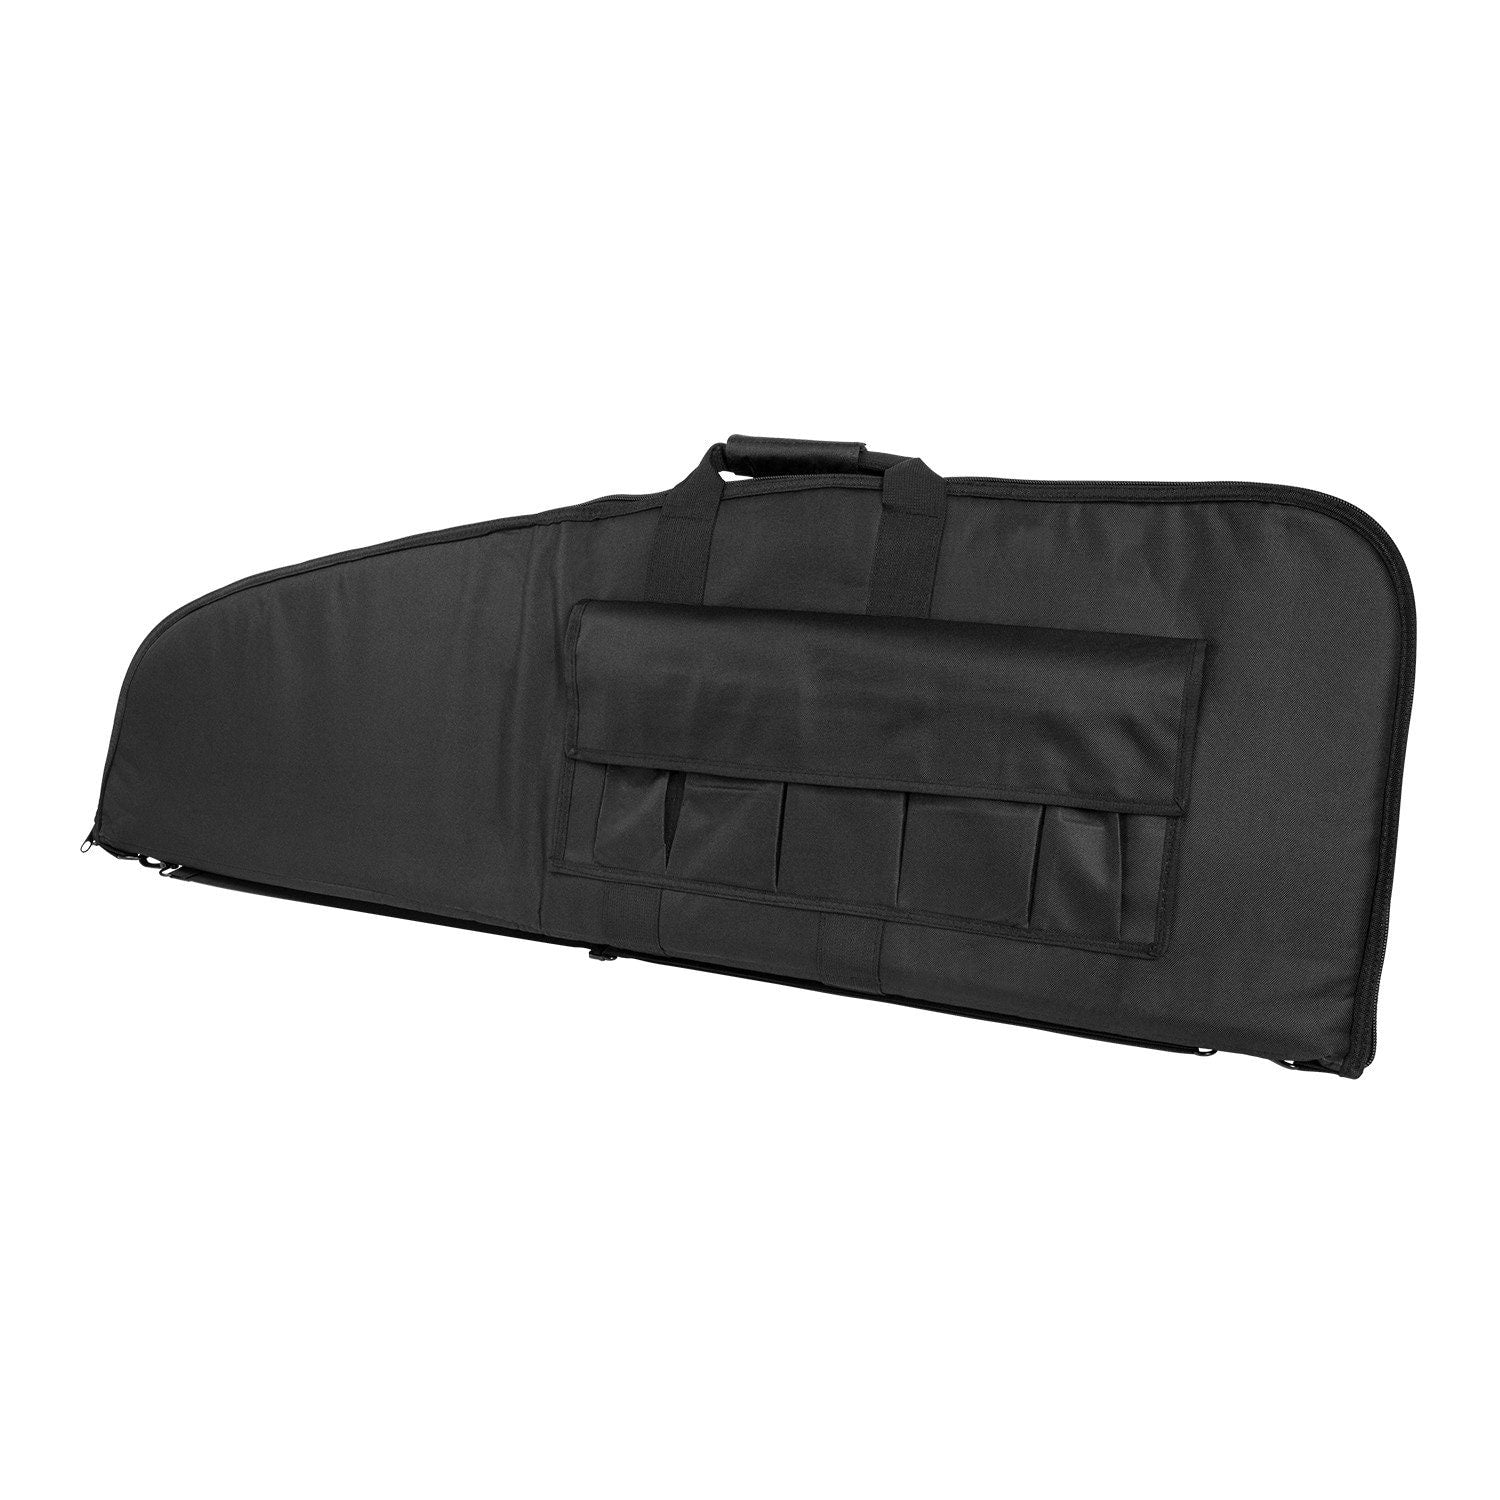 Scope-Ready Rifle Case (42 Inch X 16 Inch) - Black - Rifle/carbine Cases - Vism - Colonel Mustard